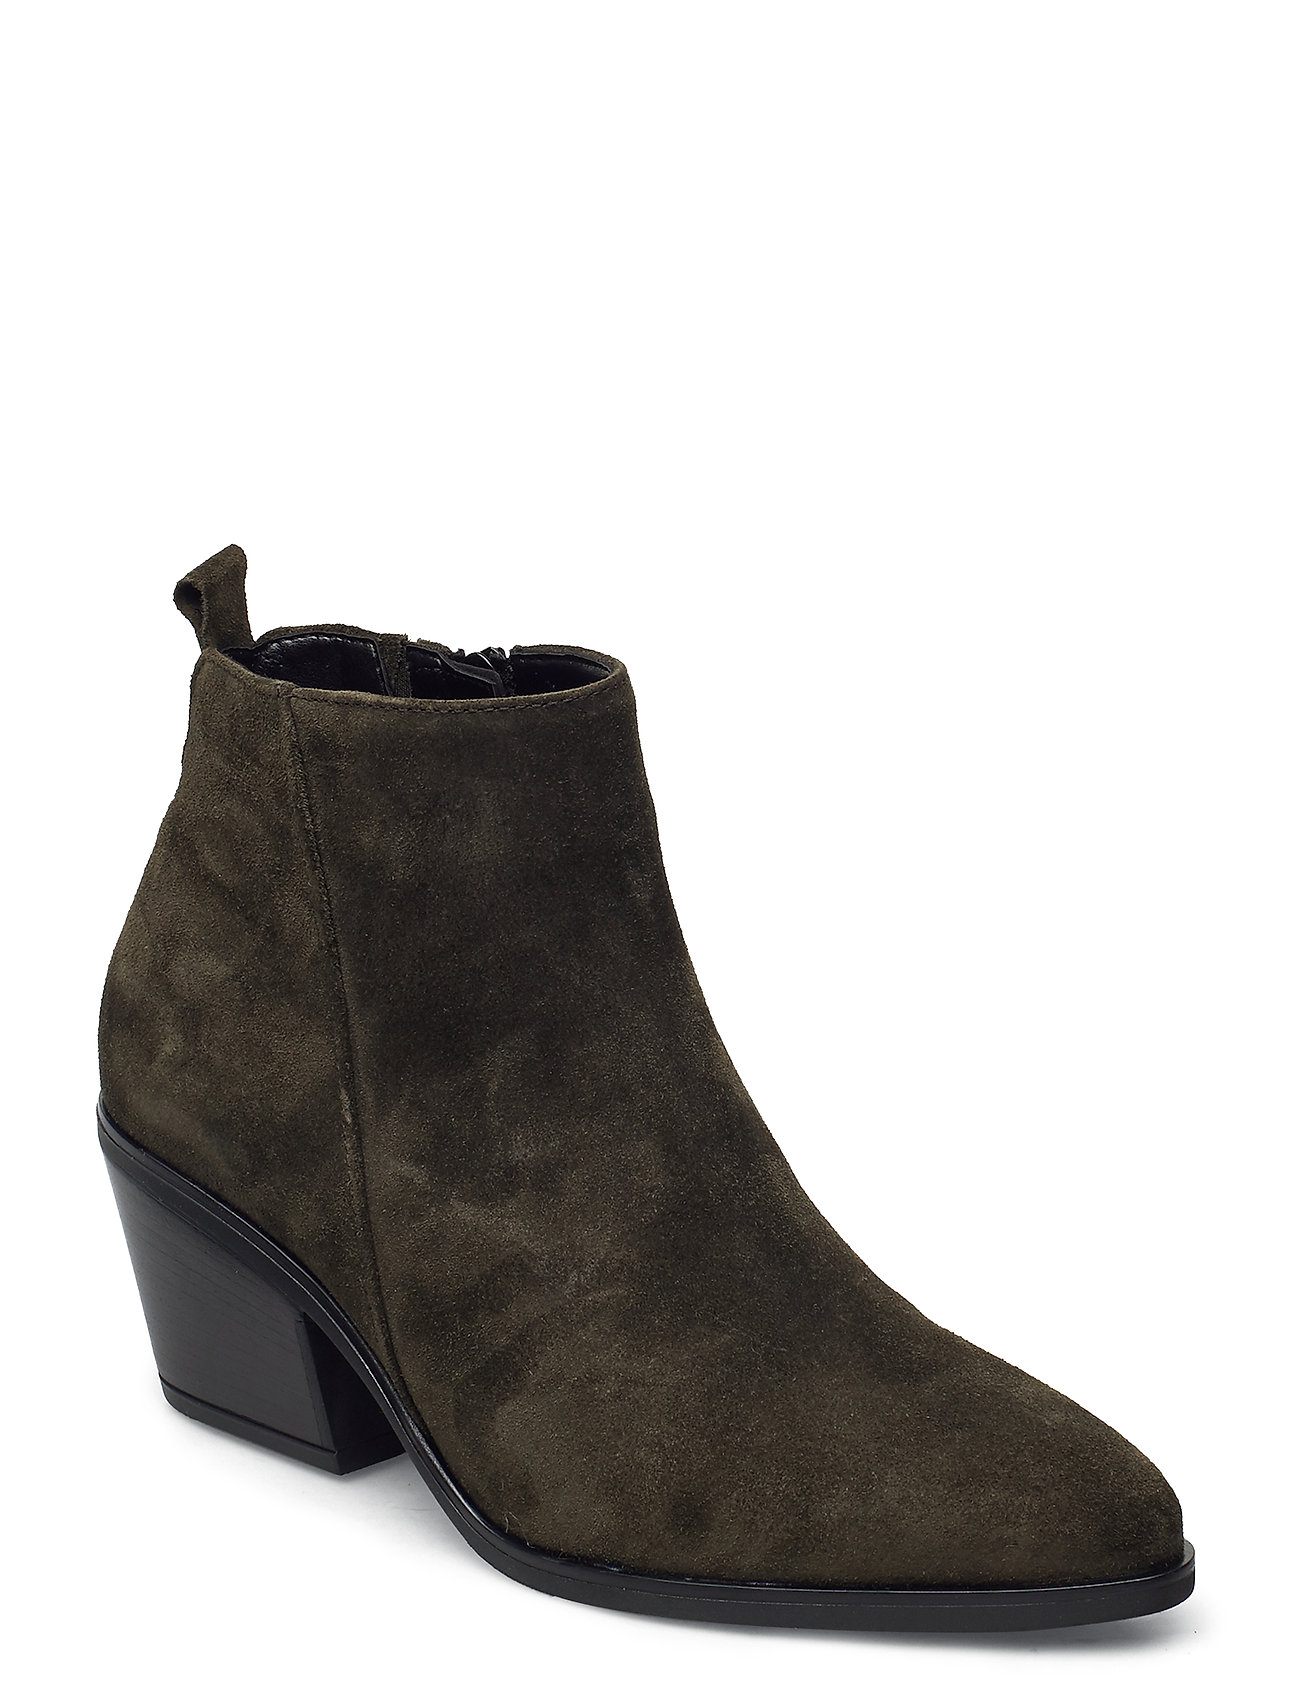 Image of Ankle Boot Shoes Boots Ankle Boots Ankle Boot - Heel Grøn Gabor (3445311419)